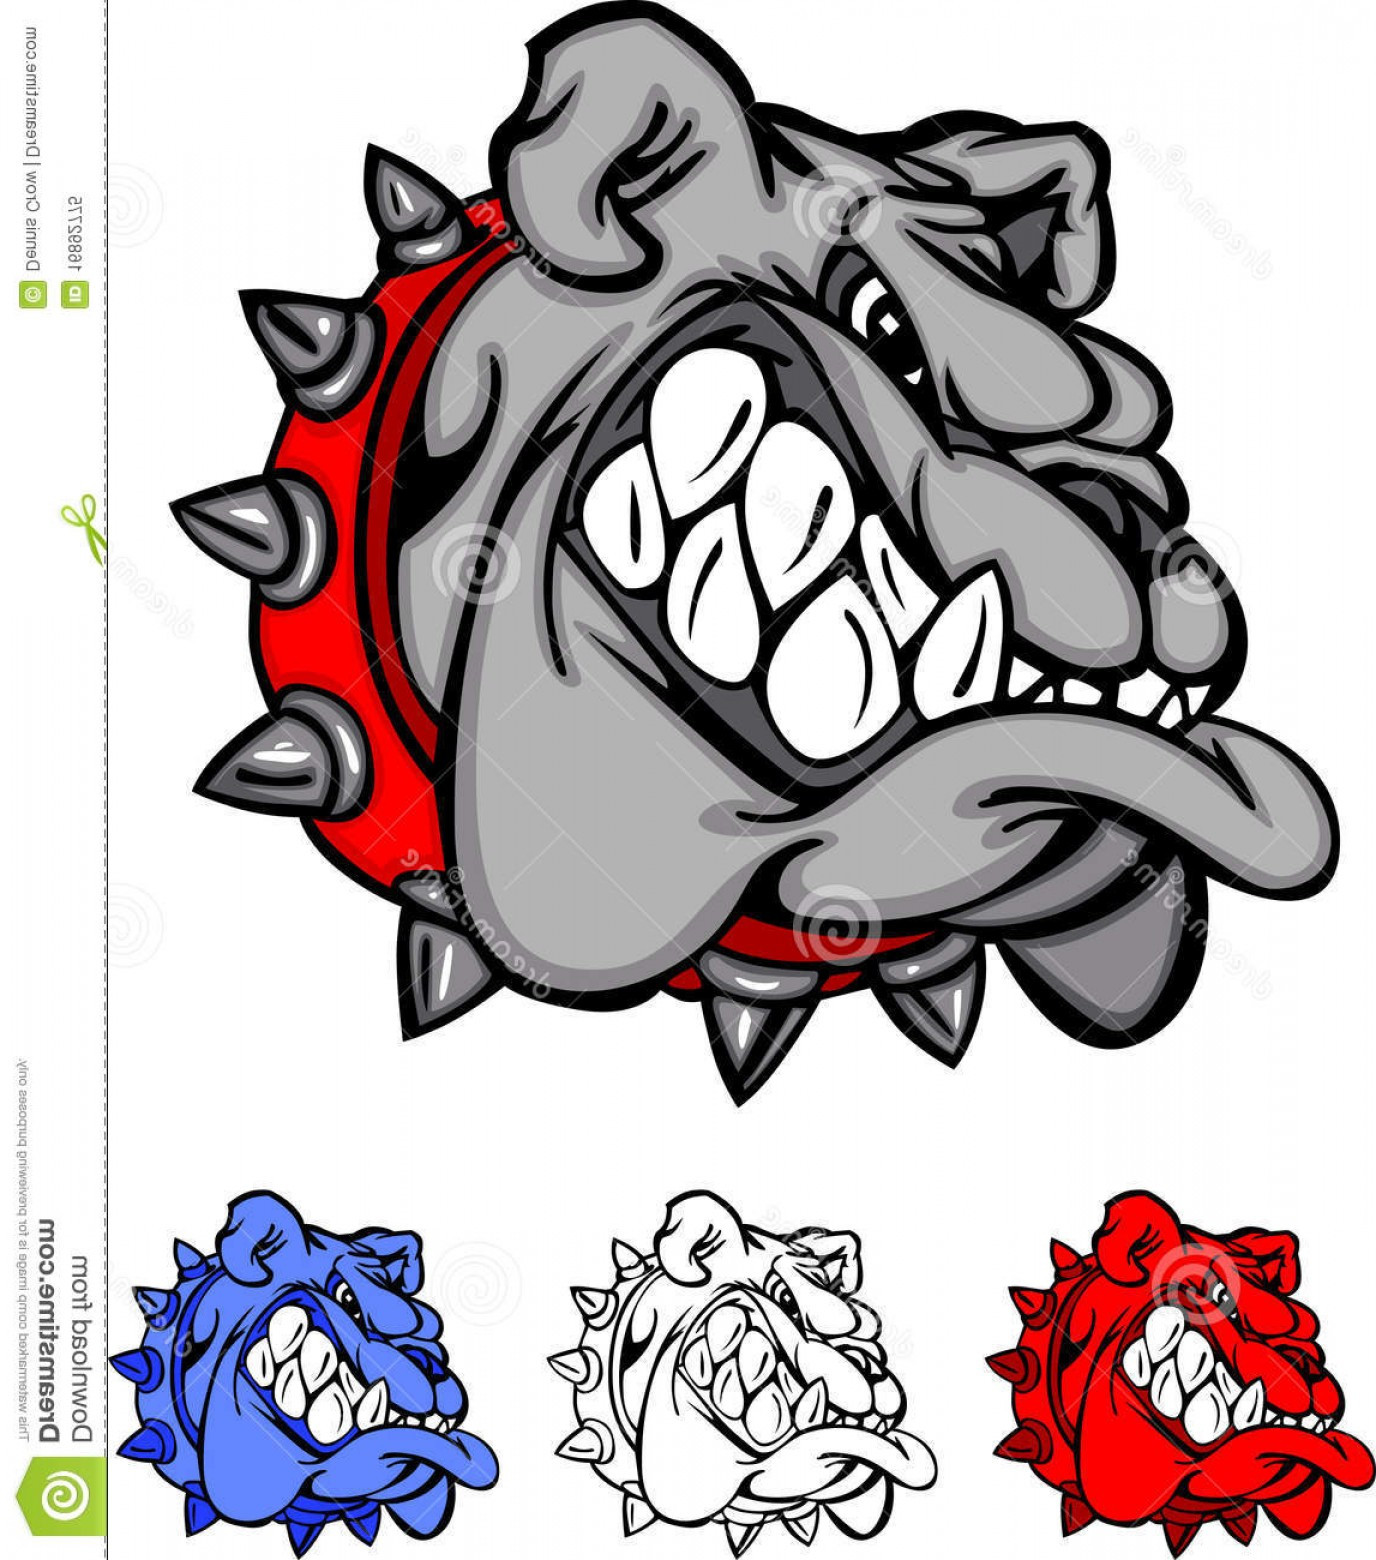 Bulldog Vector Art: Royalty Free Stock Photo Bulldog Team Mascot Vector Logo Image